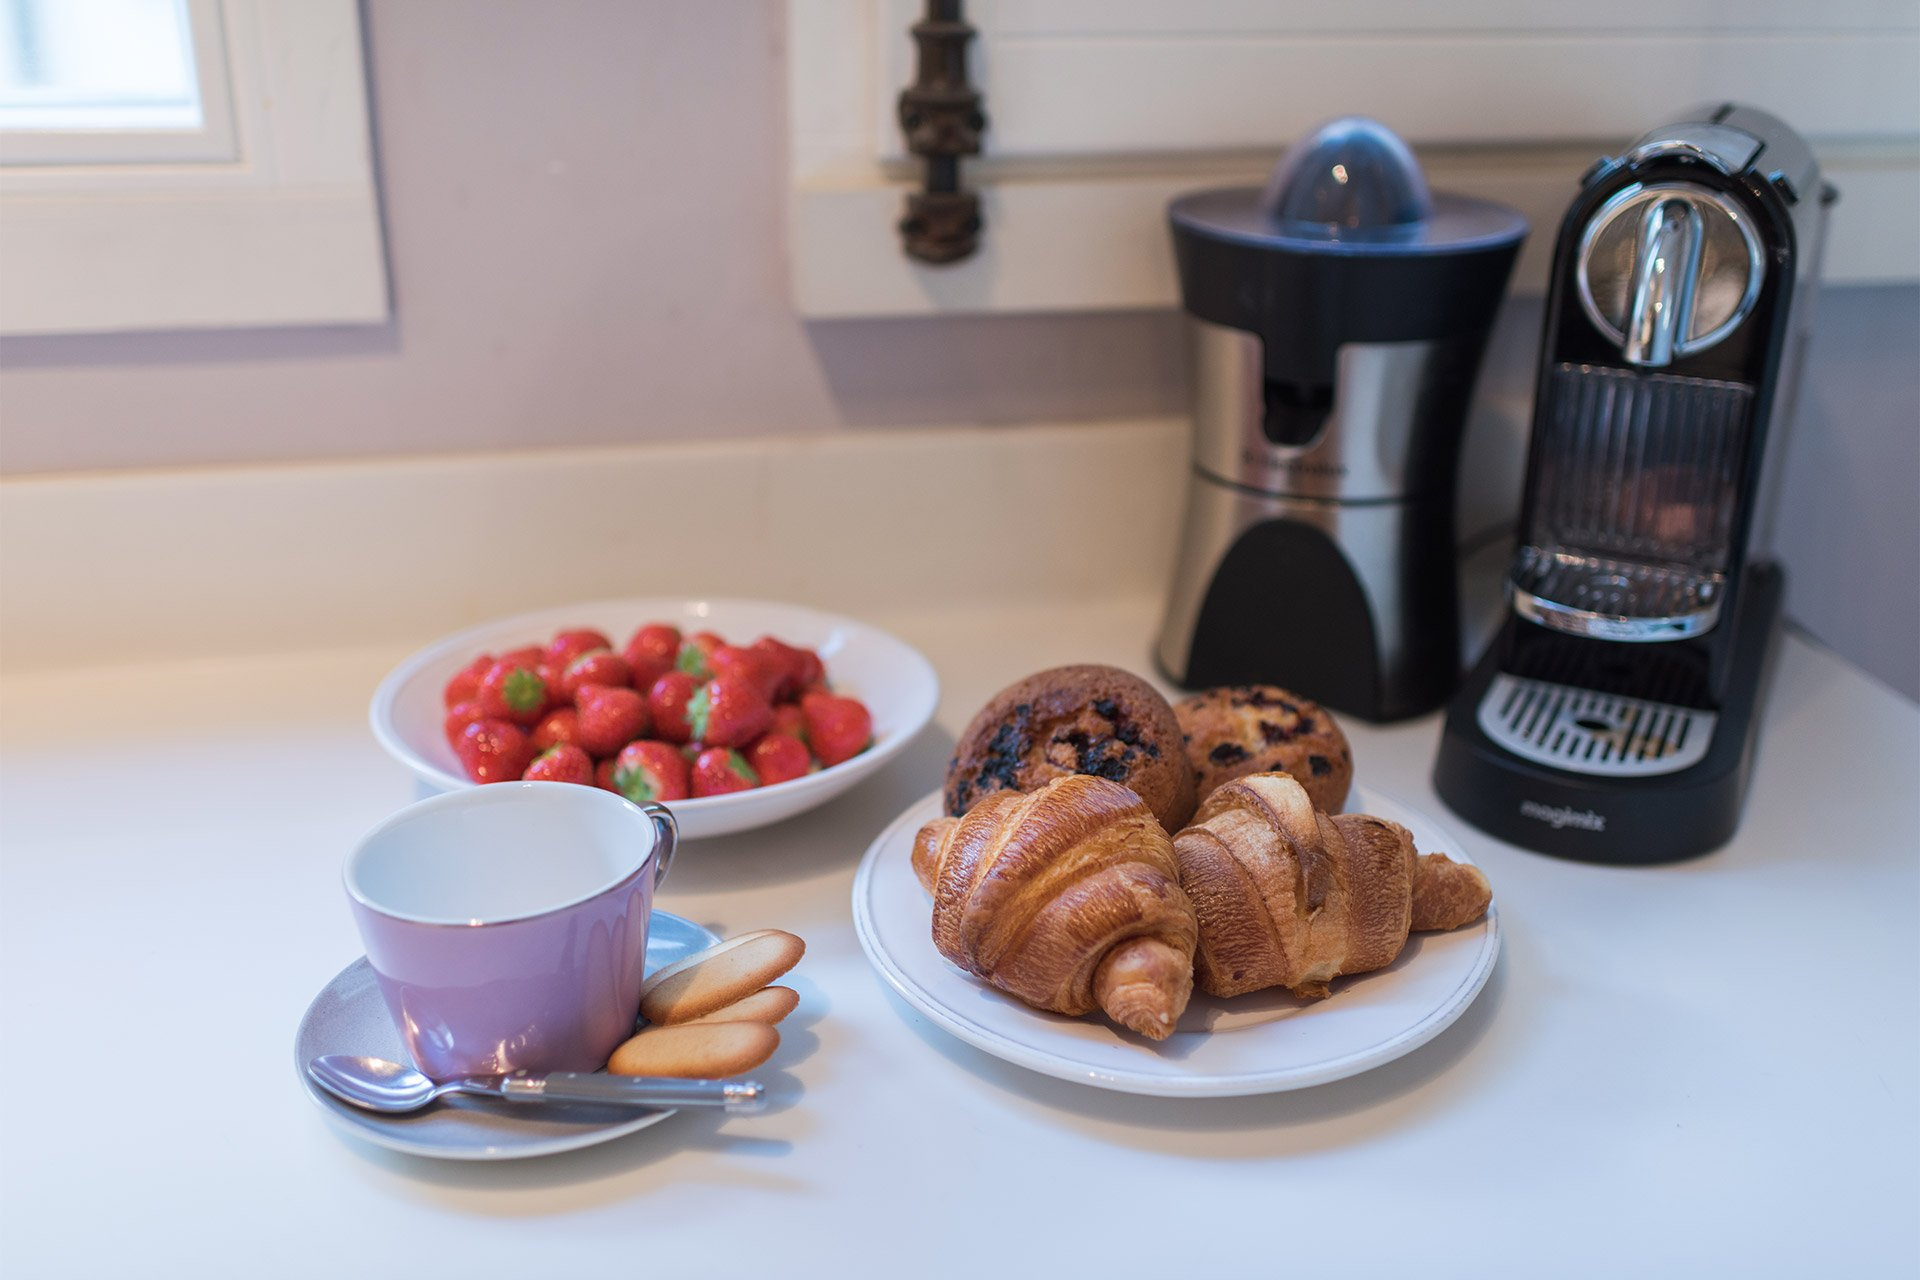 Fresh croissants, berries and coffee in the Maubert vacation rental offered by Paris Perfect